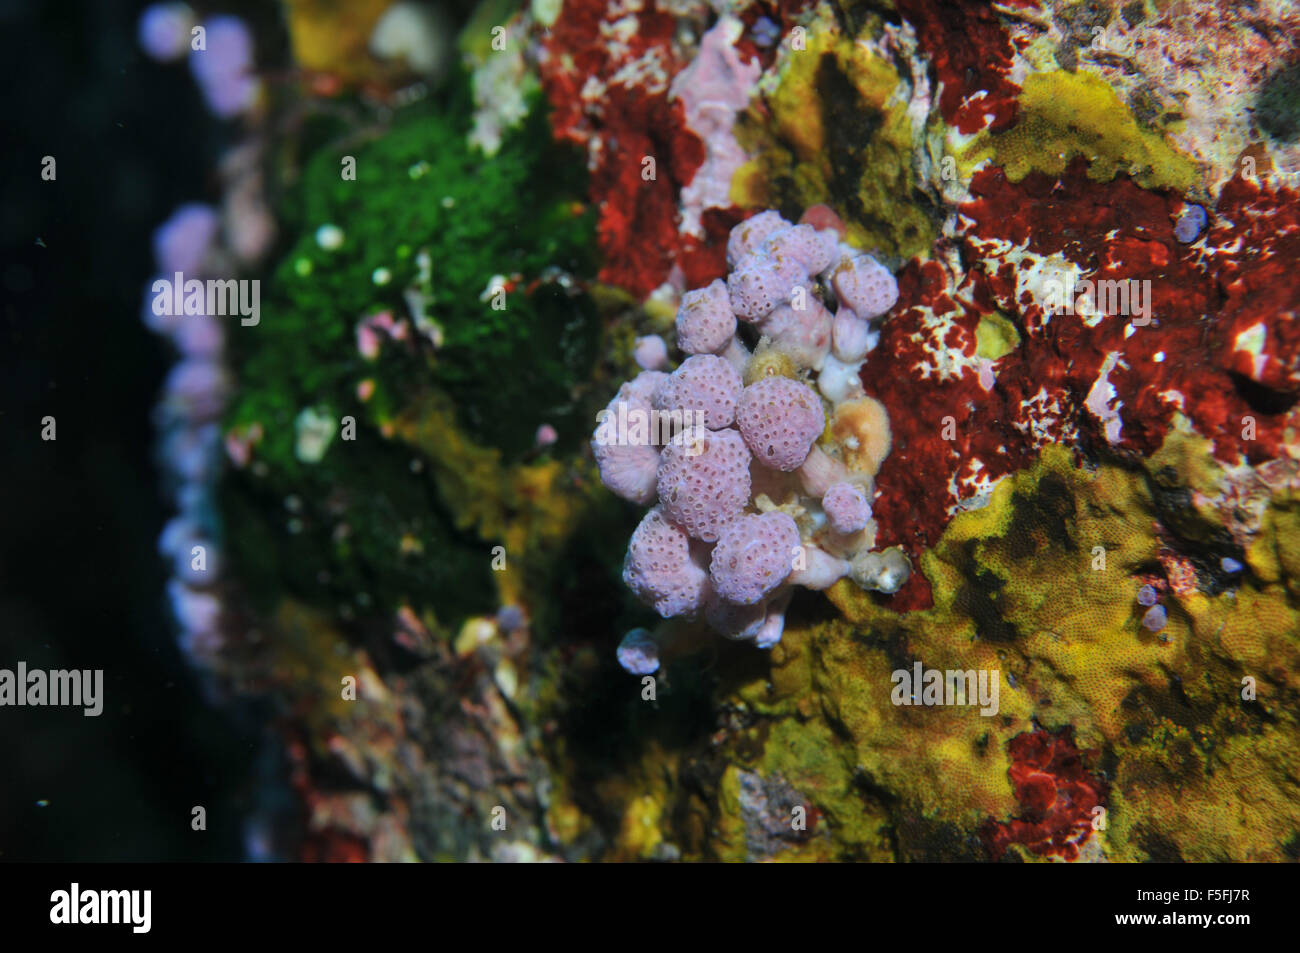 A colorful wall of the coral reef around Poor Knights Islands Nature Reserve, Bay of islands, New Zealand - Stock Image